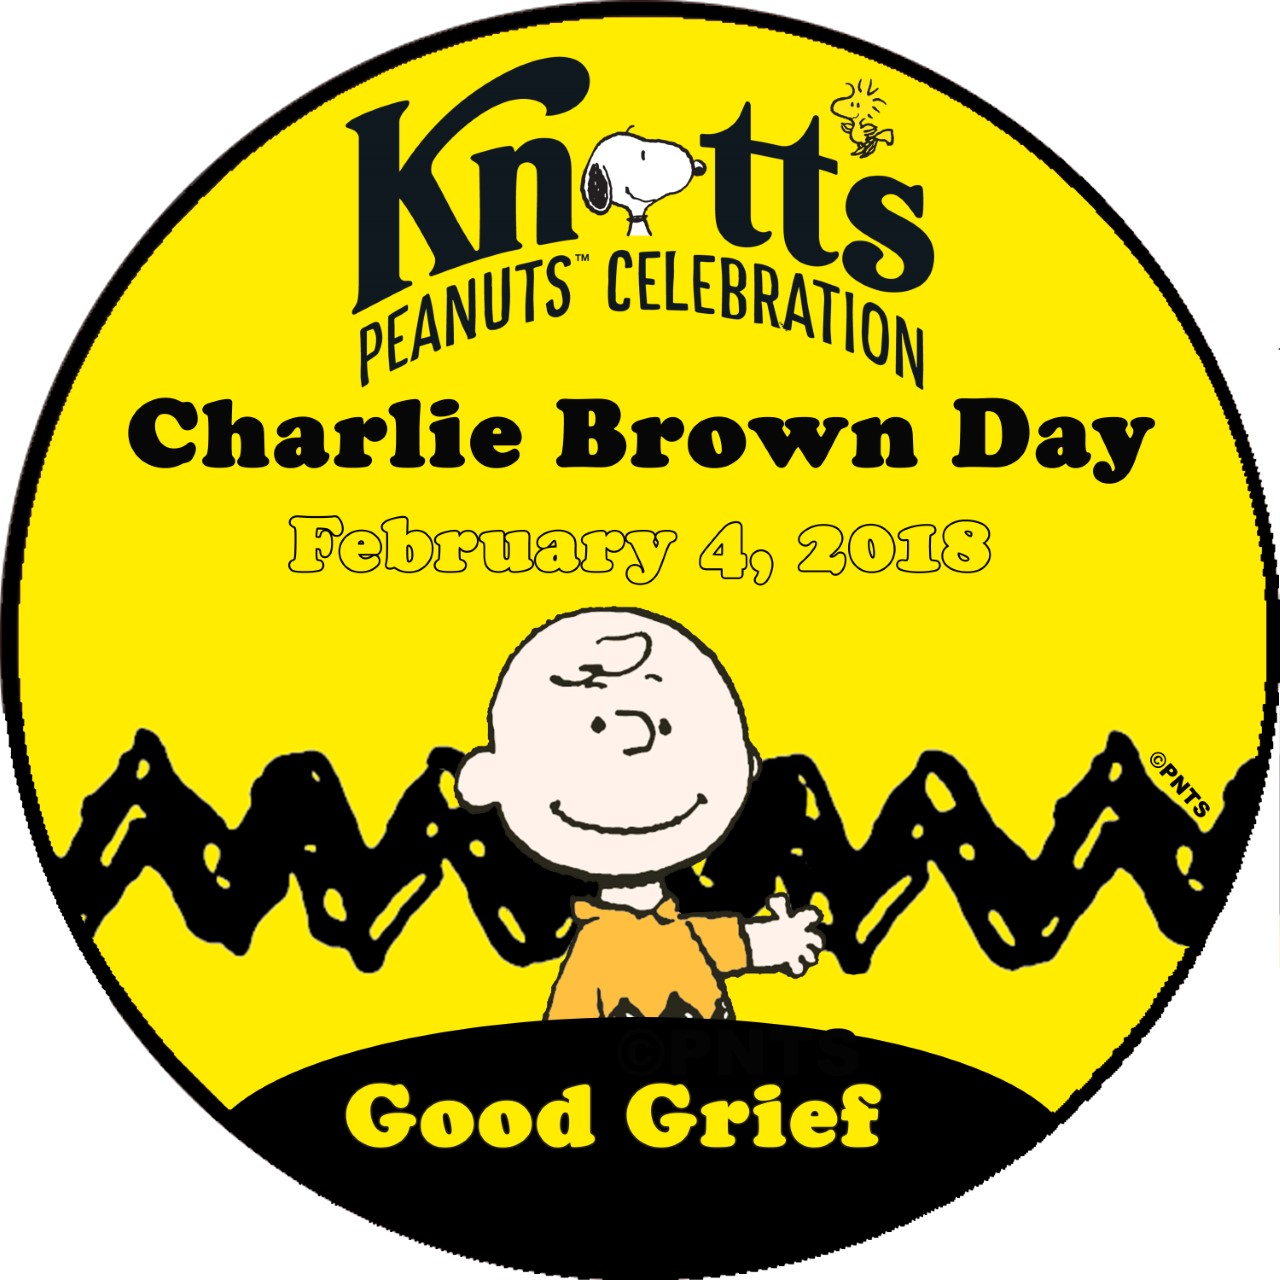 2018 Charlie Brown Day at Knott's Peanuts Celebration